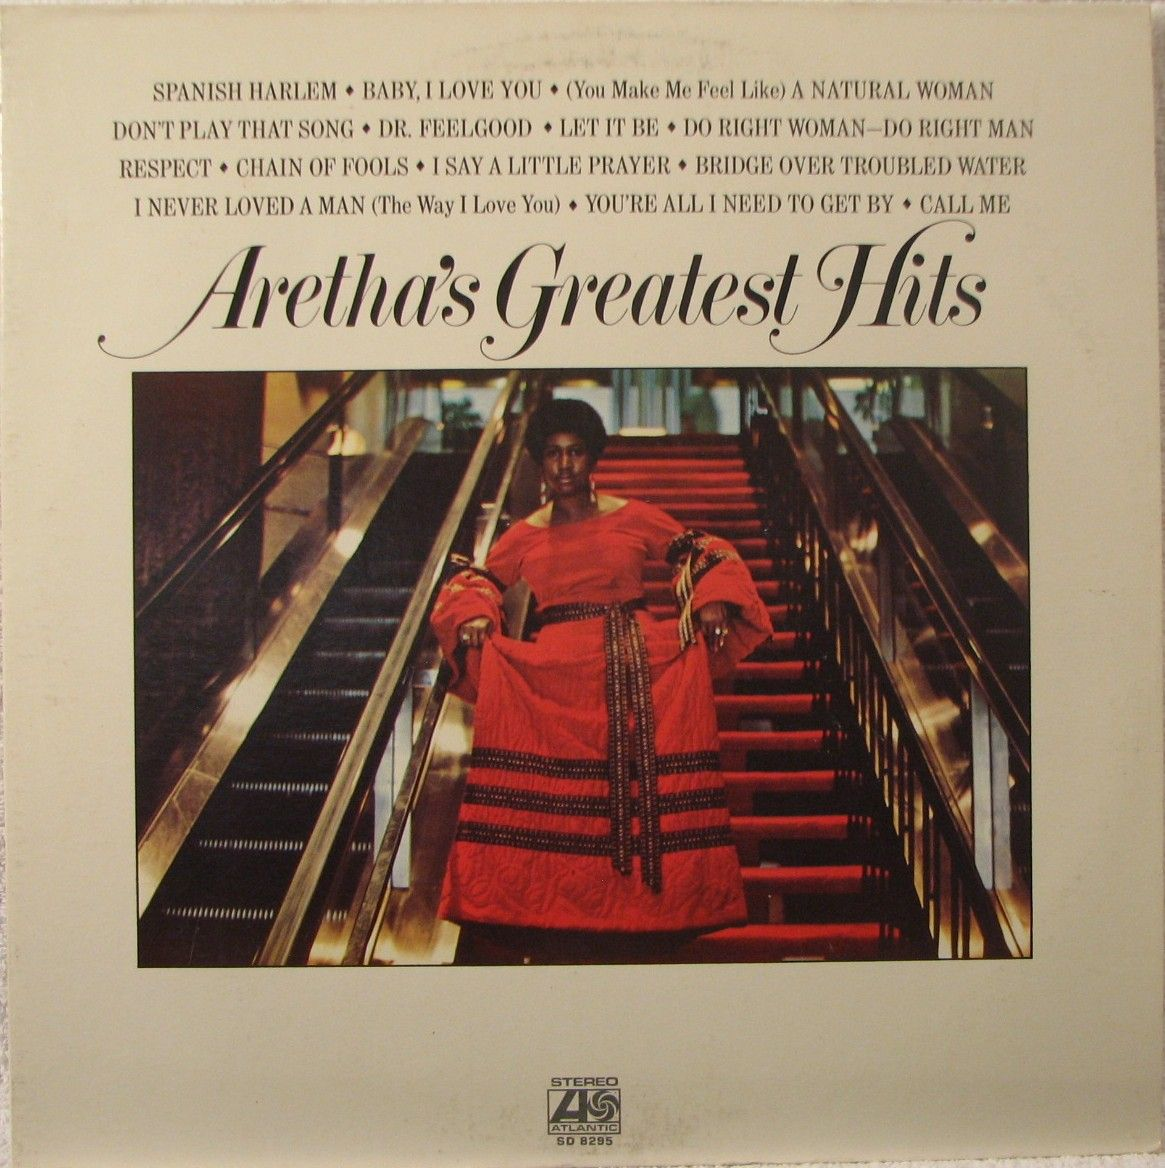 Aretha S Greatest Hits Aretha Franklin Lp Albums Greatest Hits